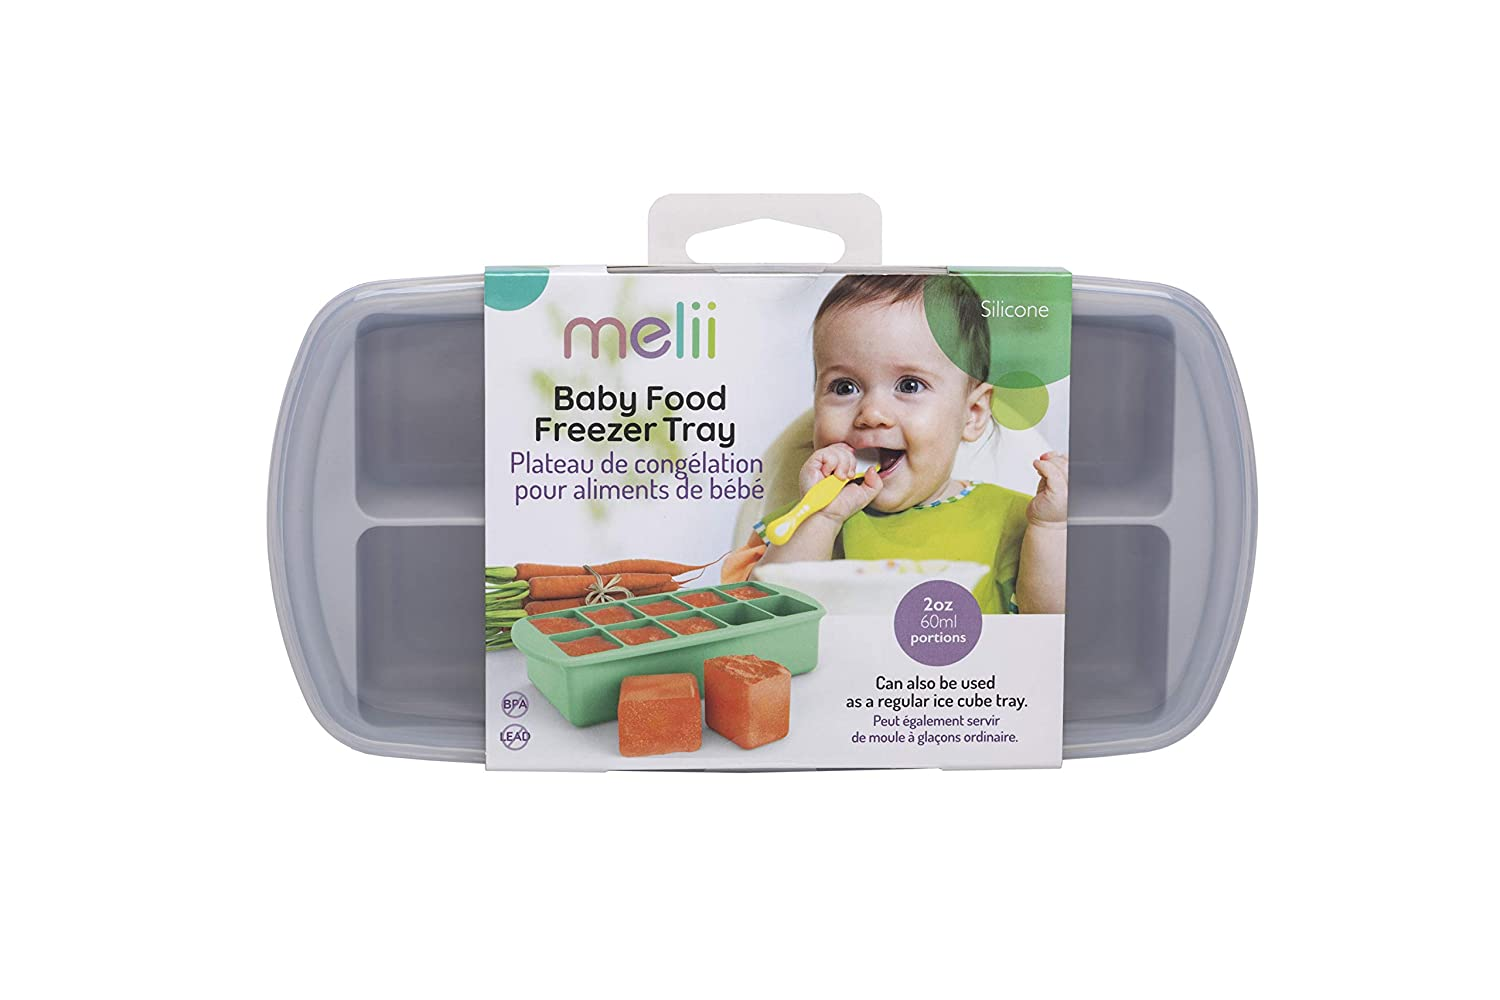 melii Silicone Baby Food Freezer Tray with Lid (Grey)